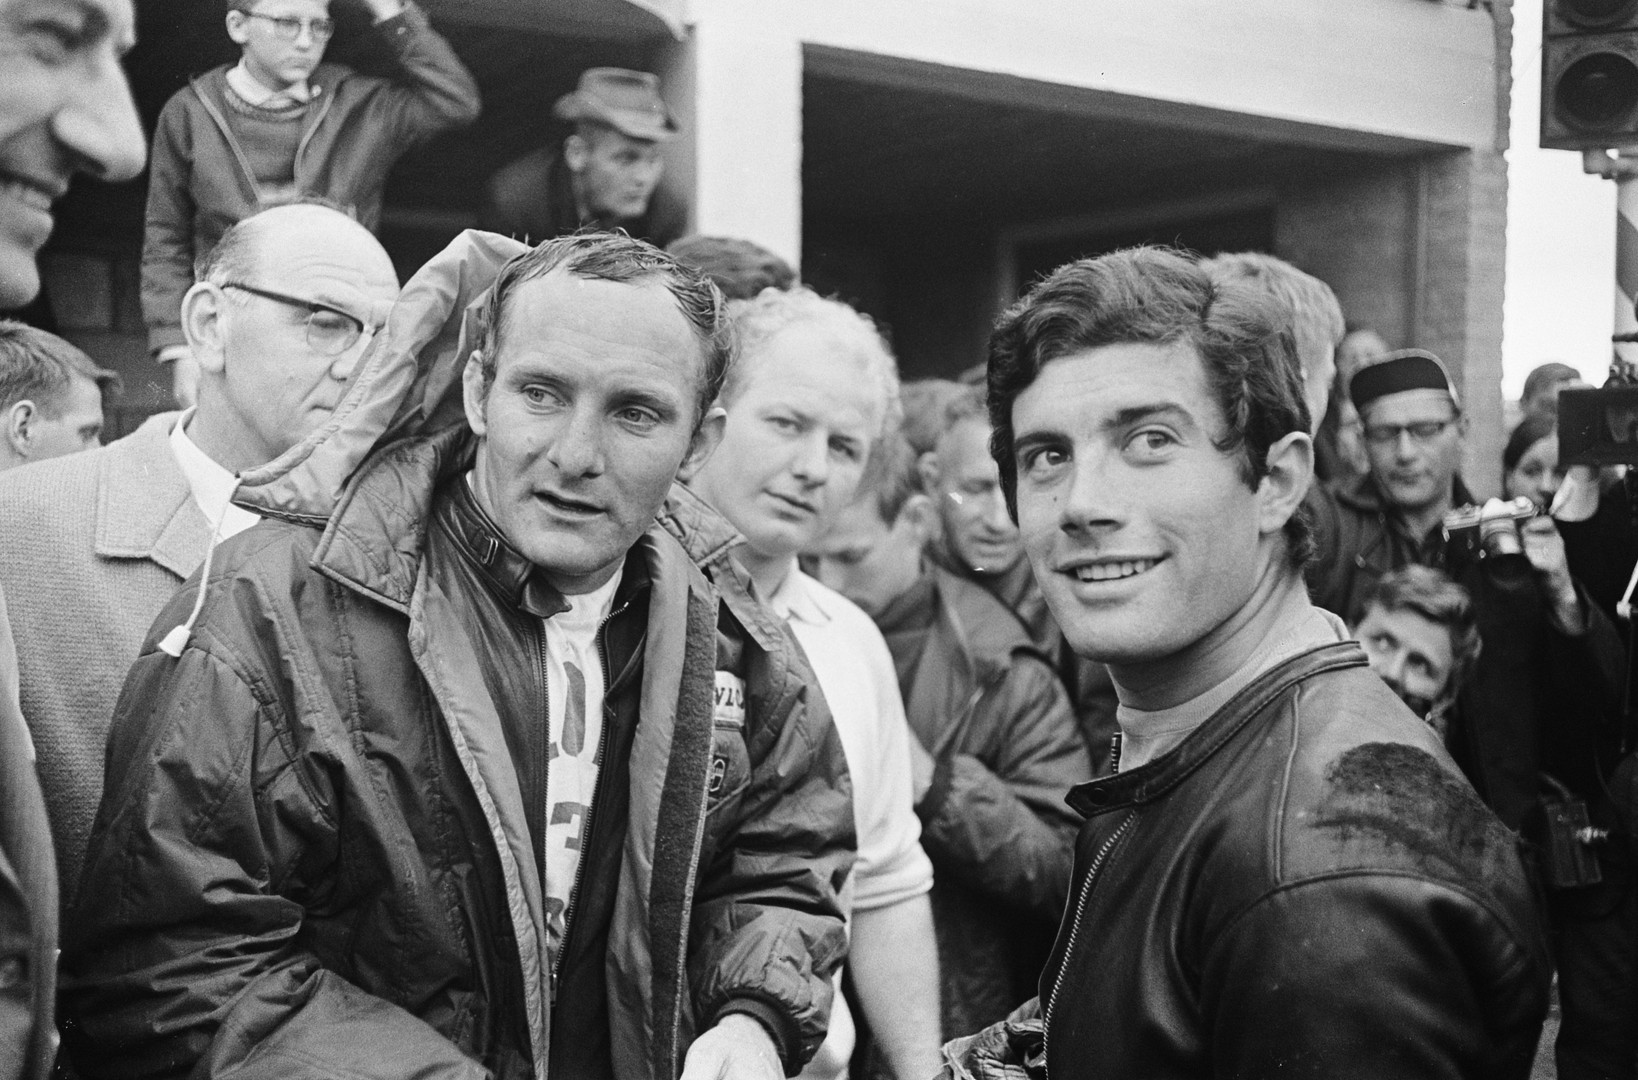 Mike_Hailwood_en_Giacomo_Agostini_in_het